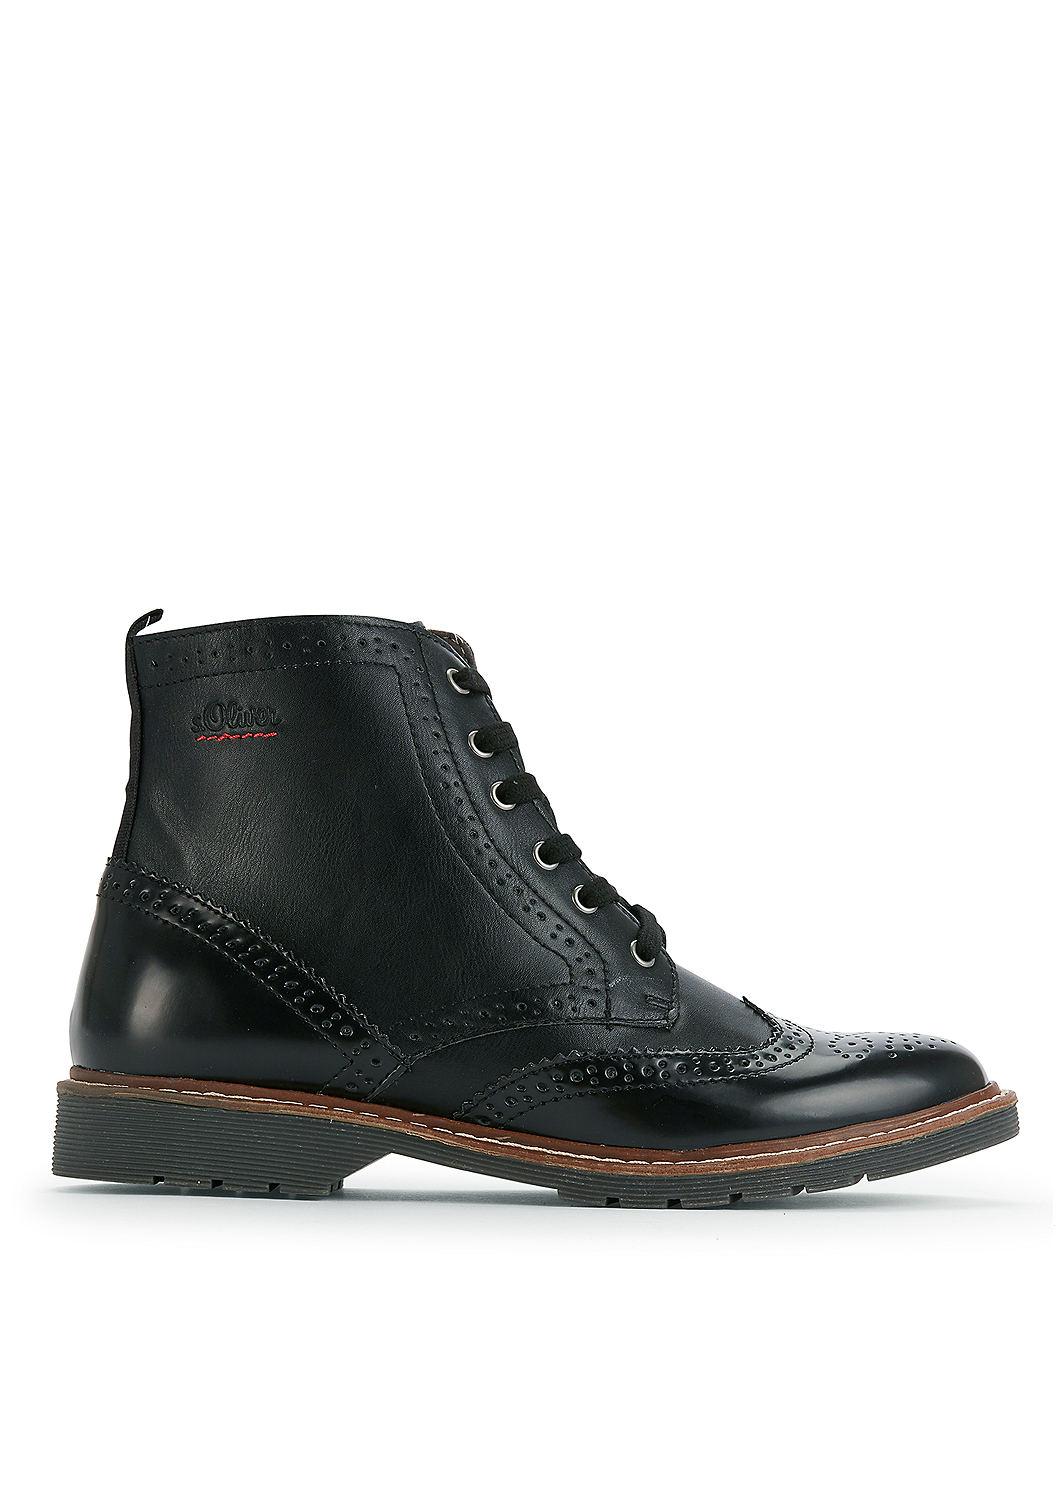 s.Oliver Boots im Brogue-Style lWxAdcwR